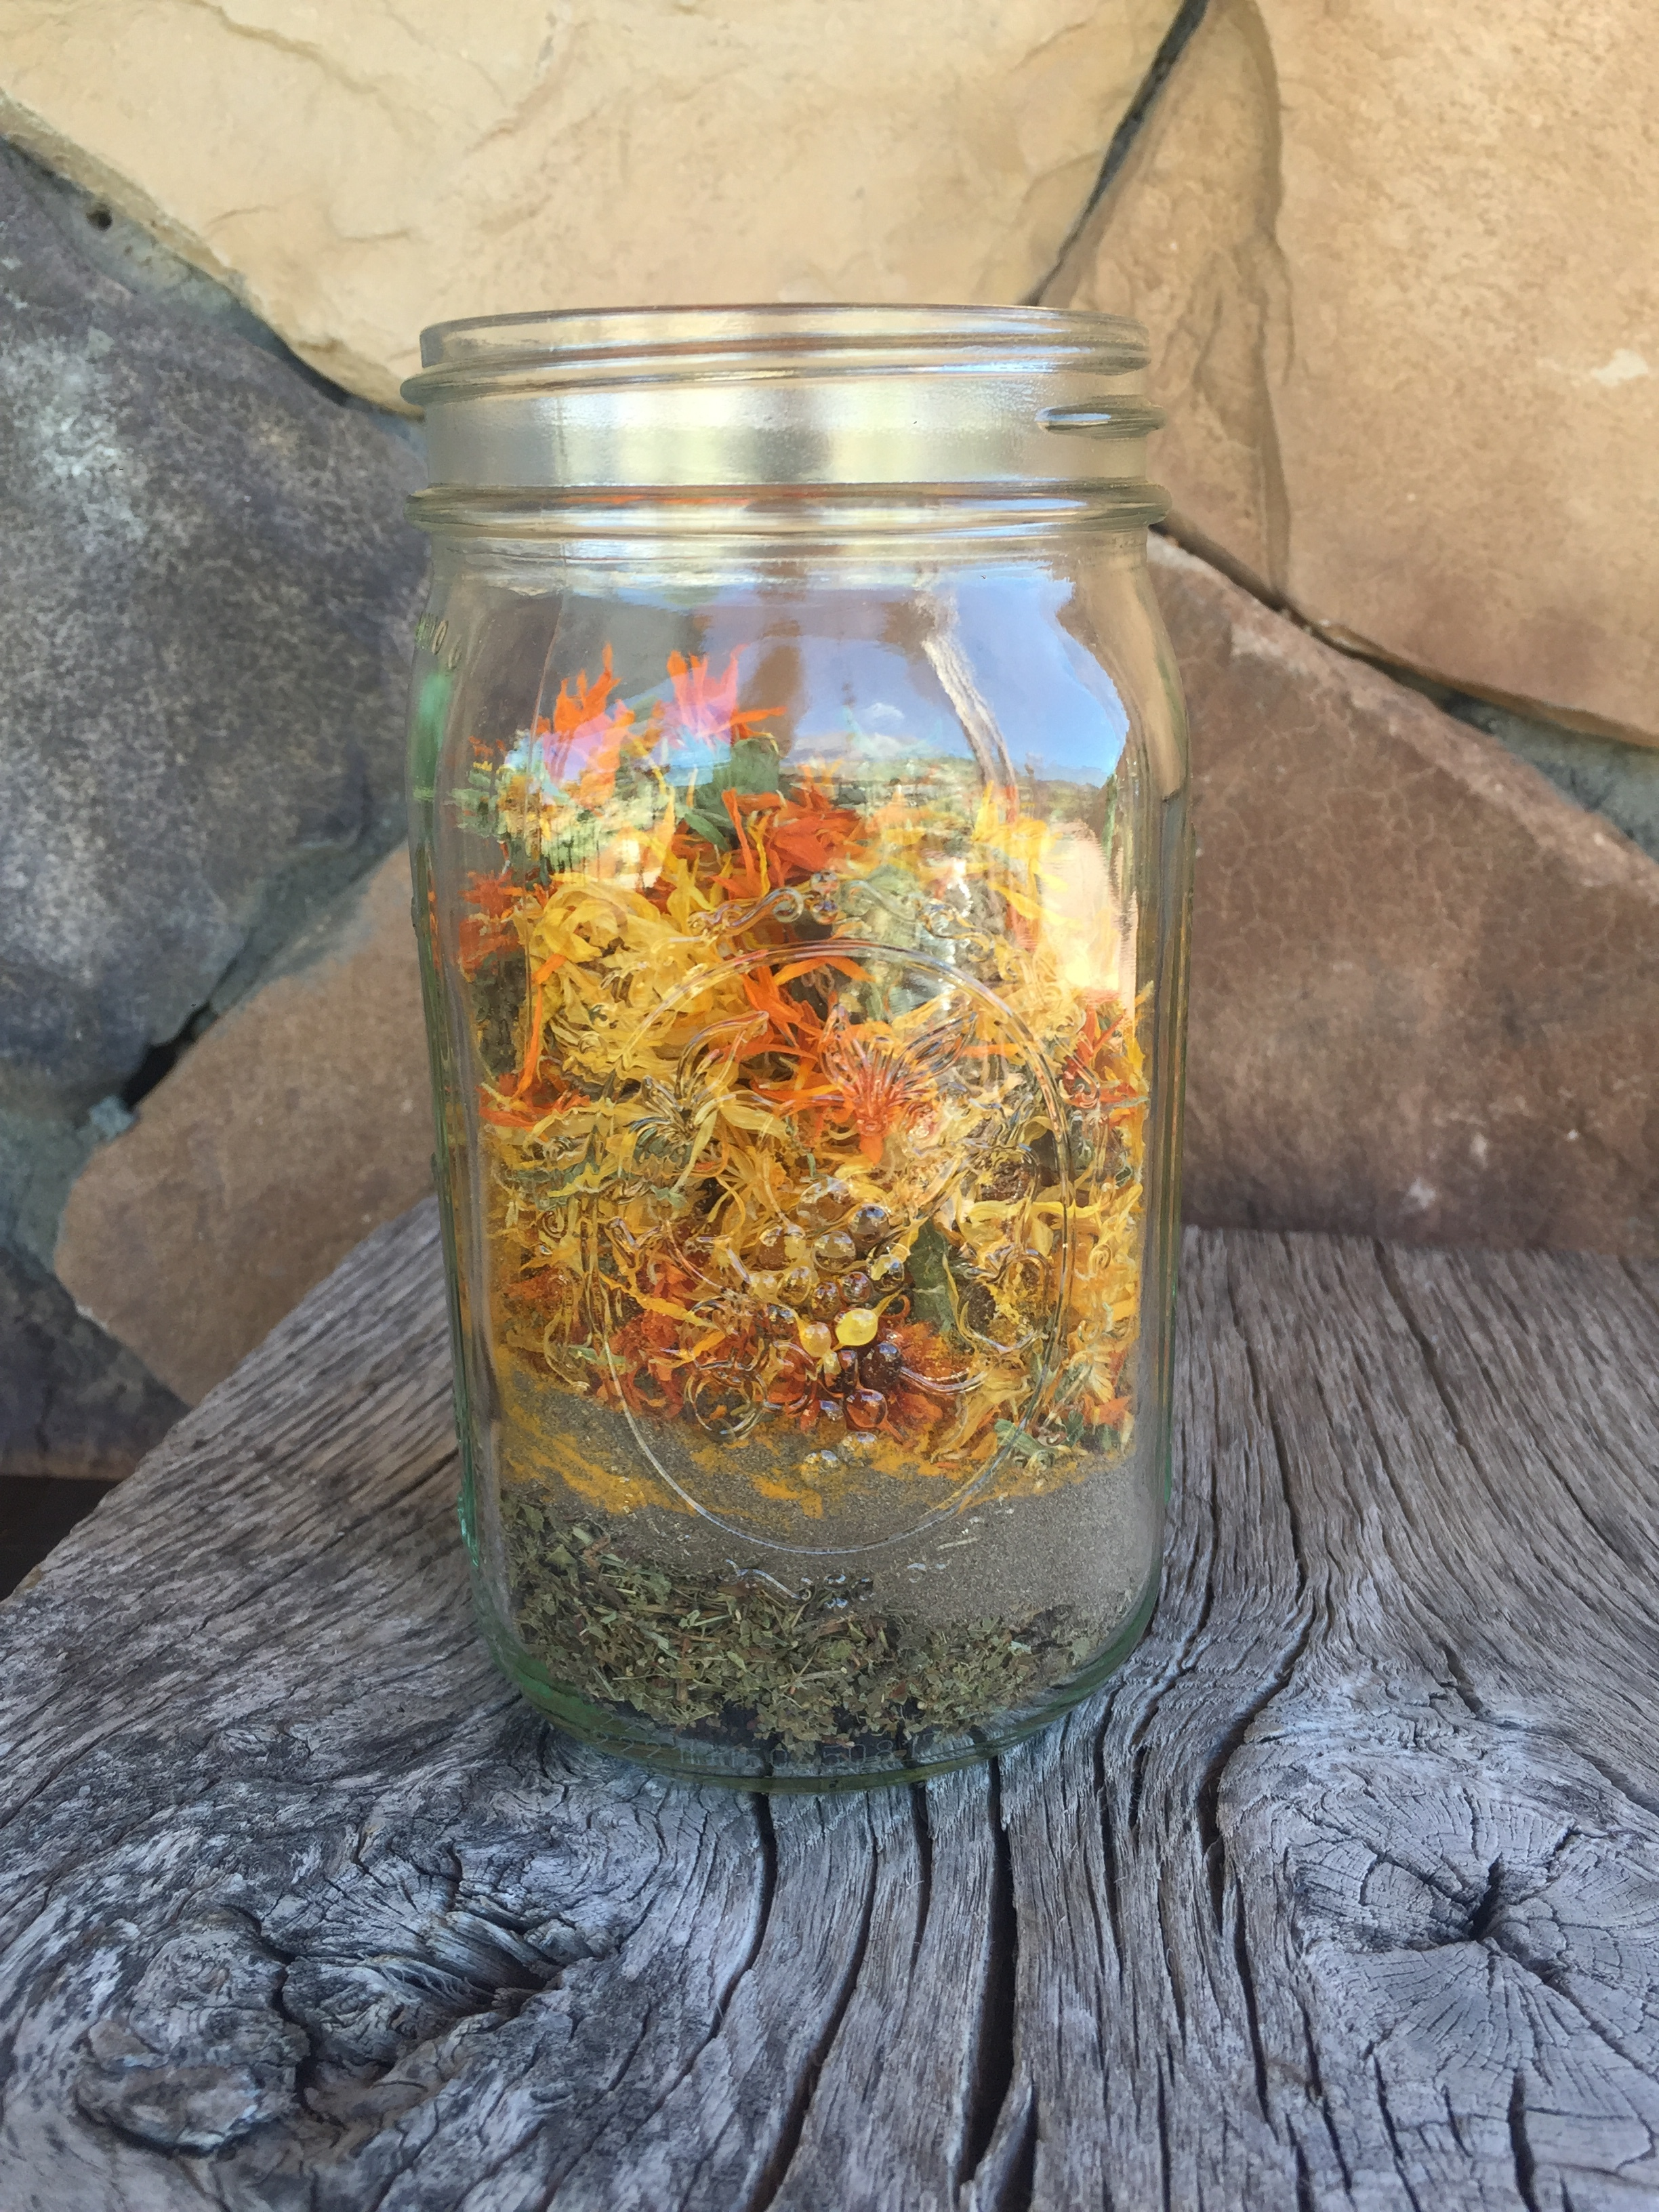 The herbs have been added to the Mason jar!